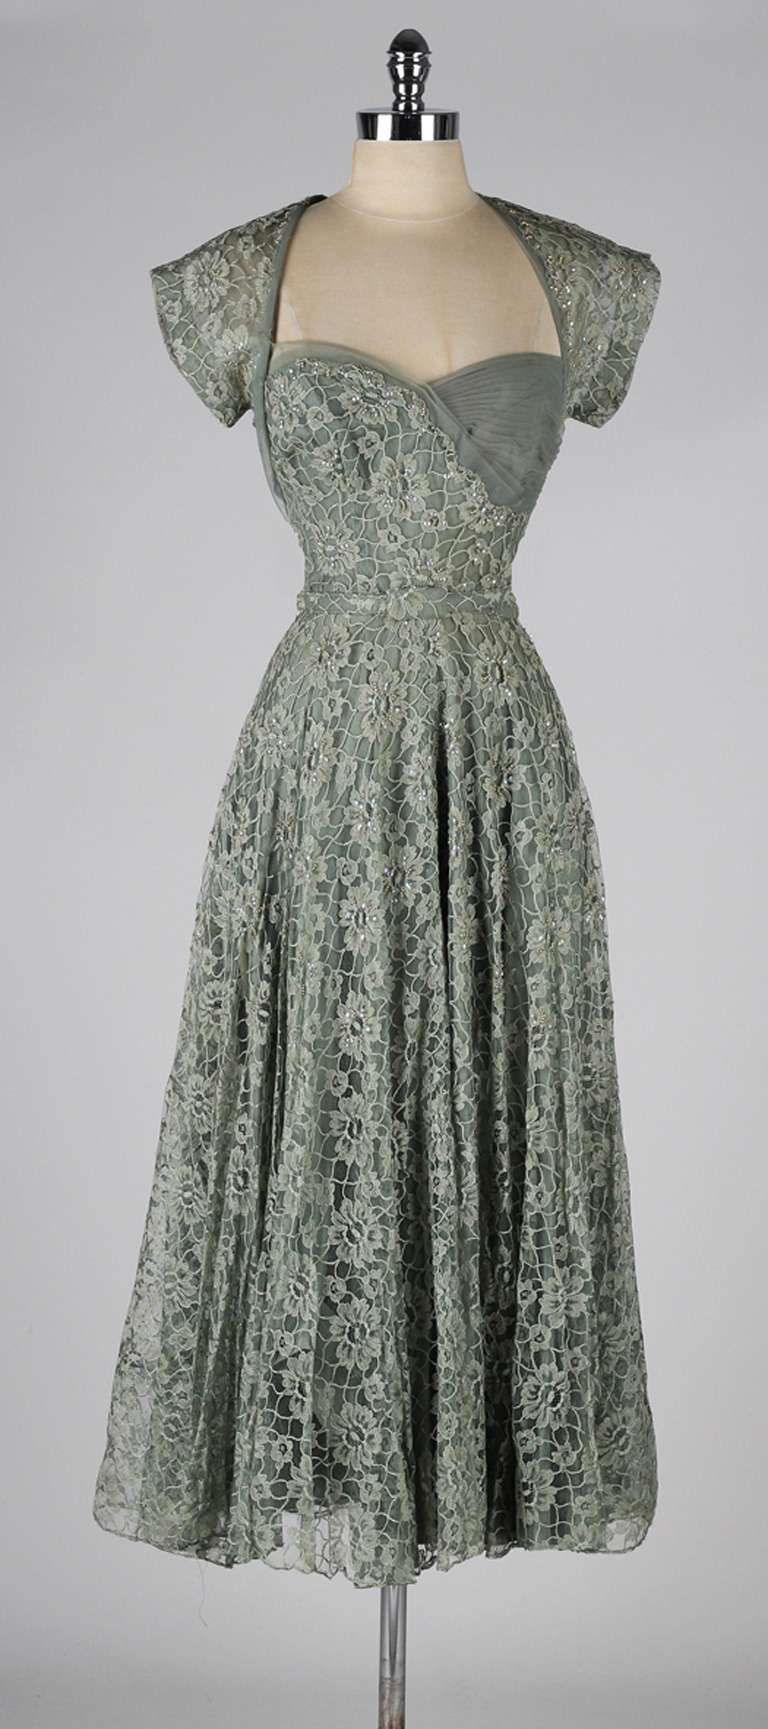 Vintage 1940's Sage Green Lace Cocktail Dress | Green lace ...